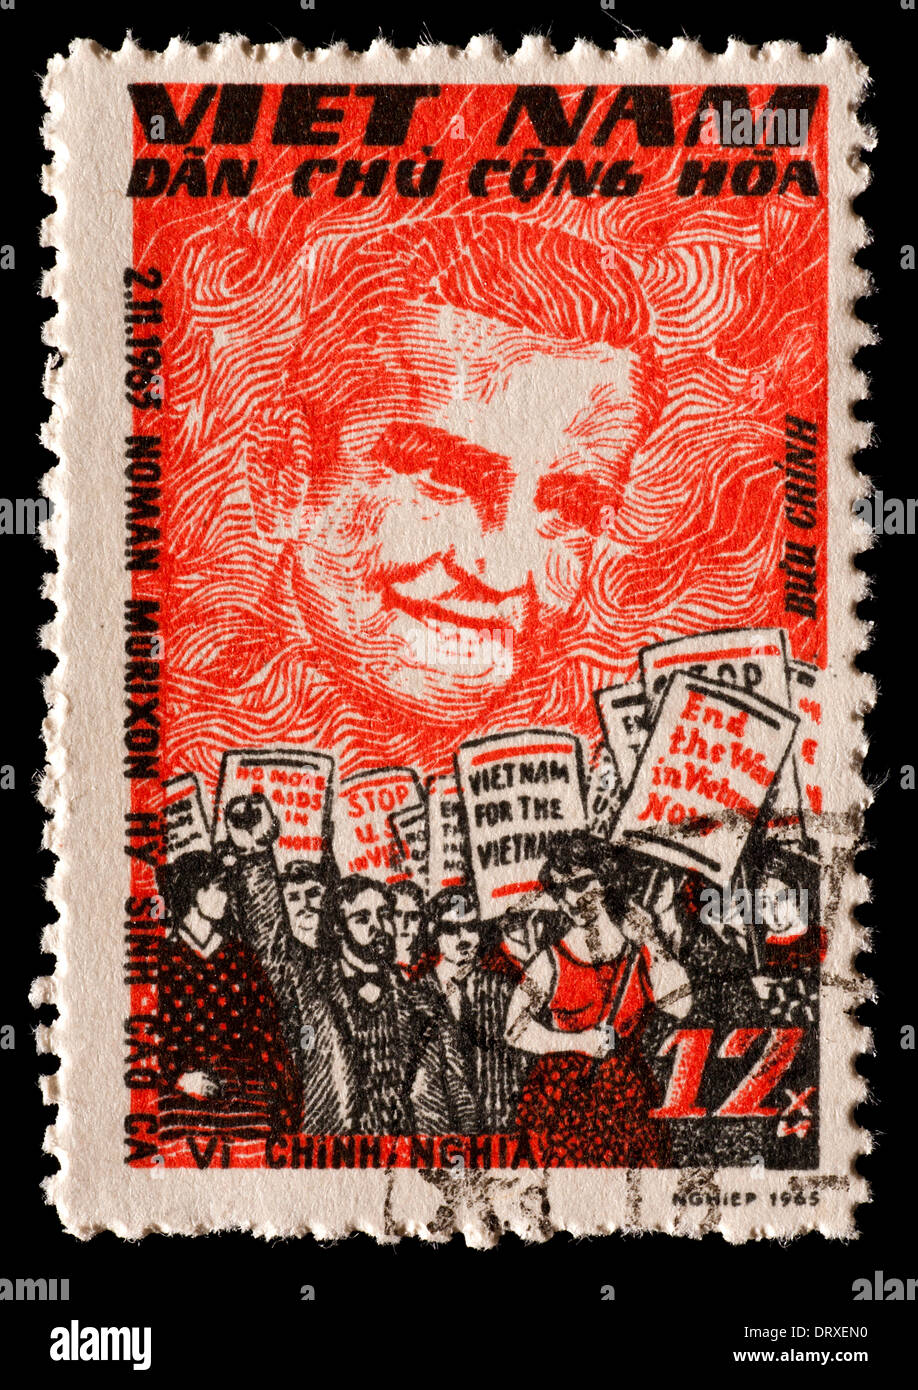 Postage stamp from Vietnam depicting Norman R. Morrison, American Vietnam war protester, and anti-war demonstration. Stock Photo